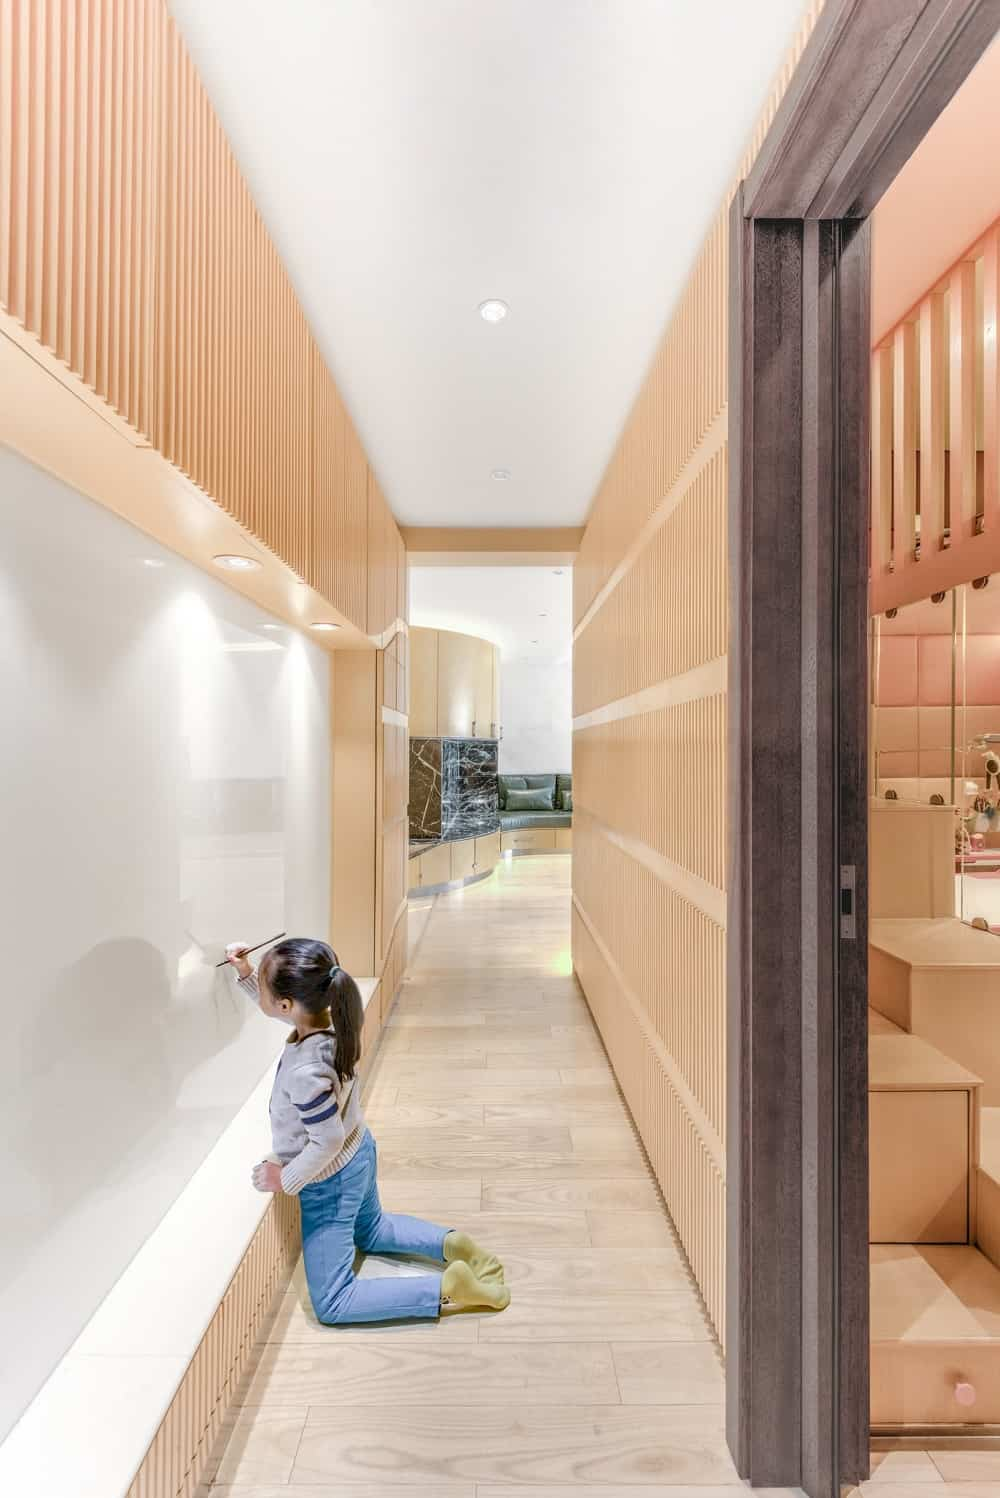 Kids room in the Home Space with Two Kids designed by Atelier Alter.